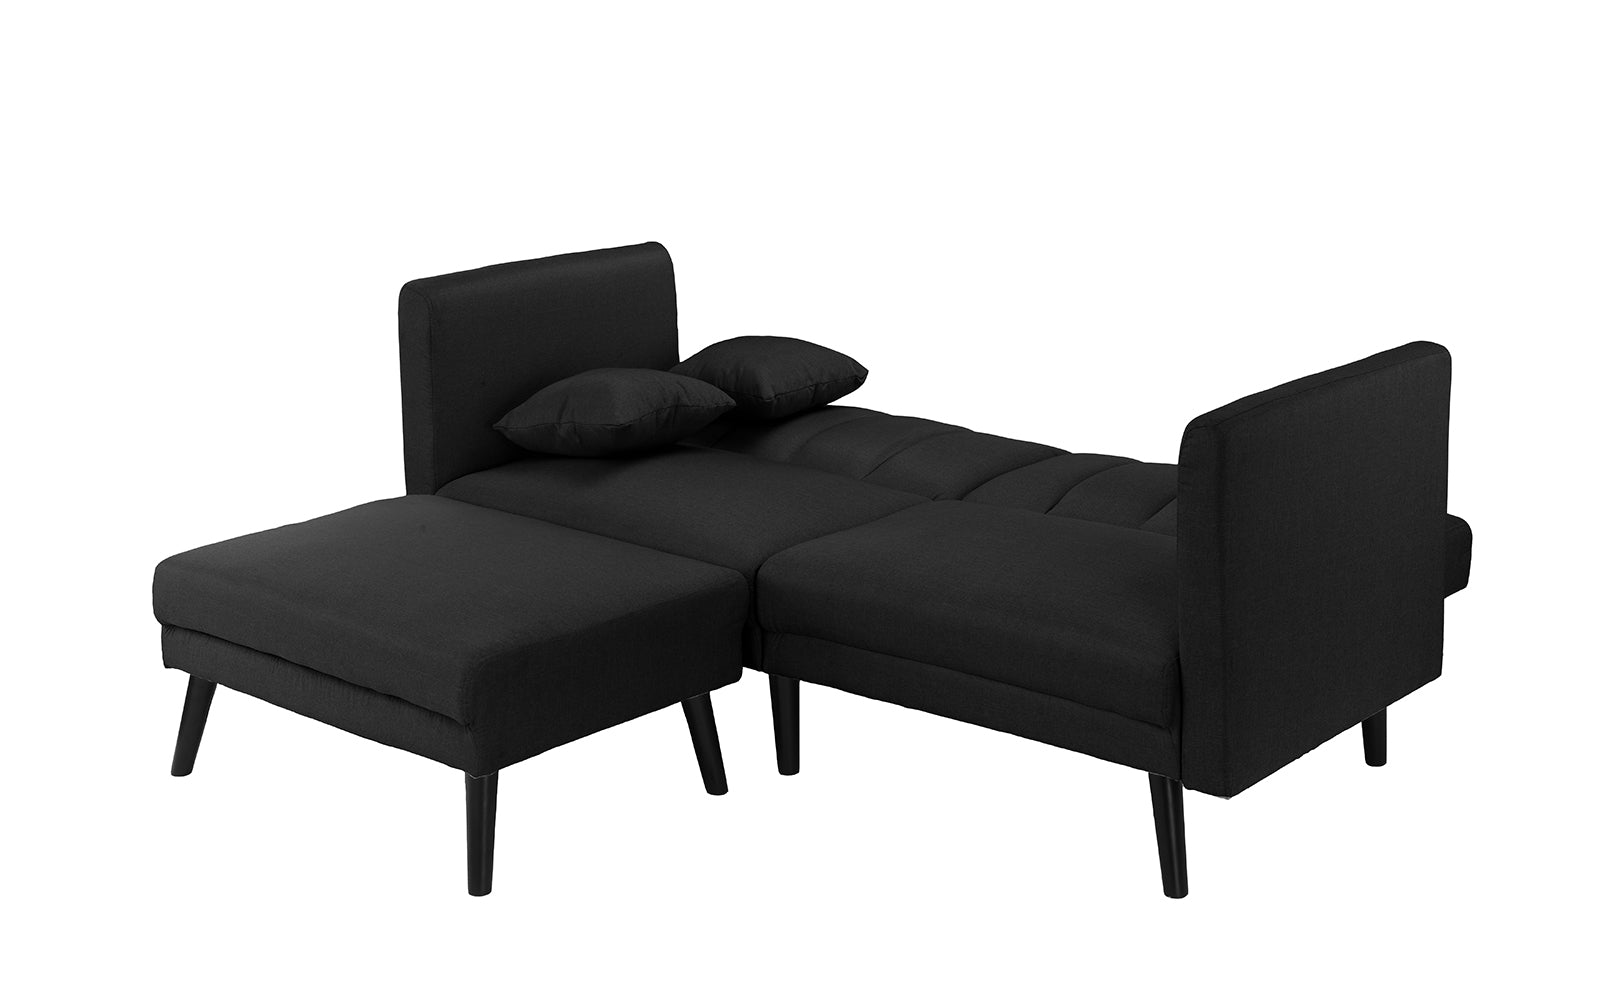 best loved 03a37 88bb7 Buy Affordable Futons Online - 20+ Modern Styles for Sale ...